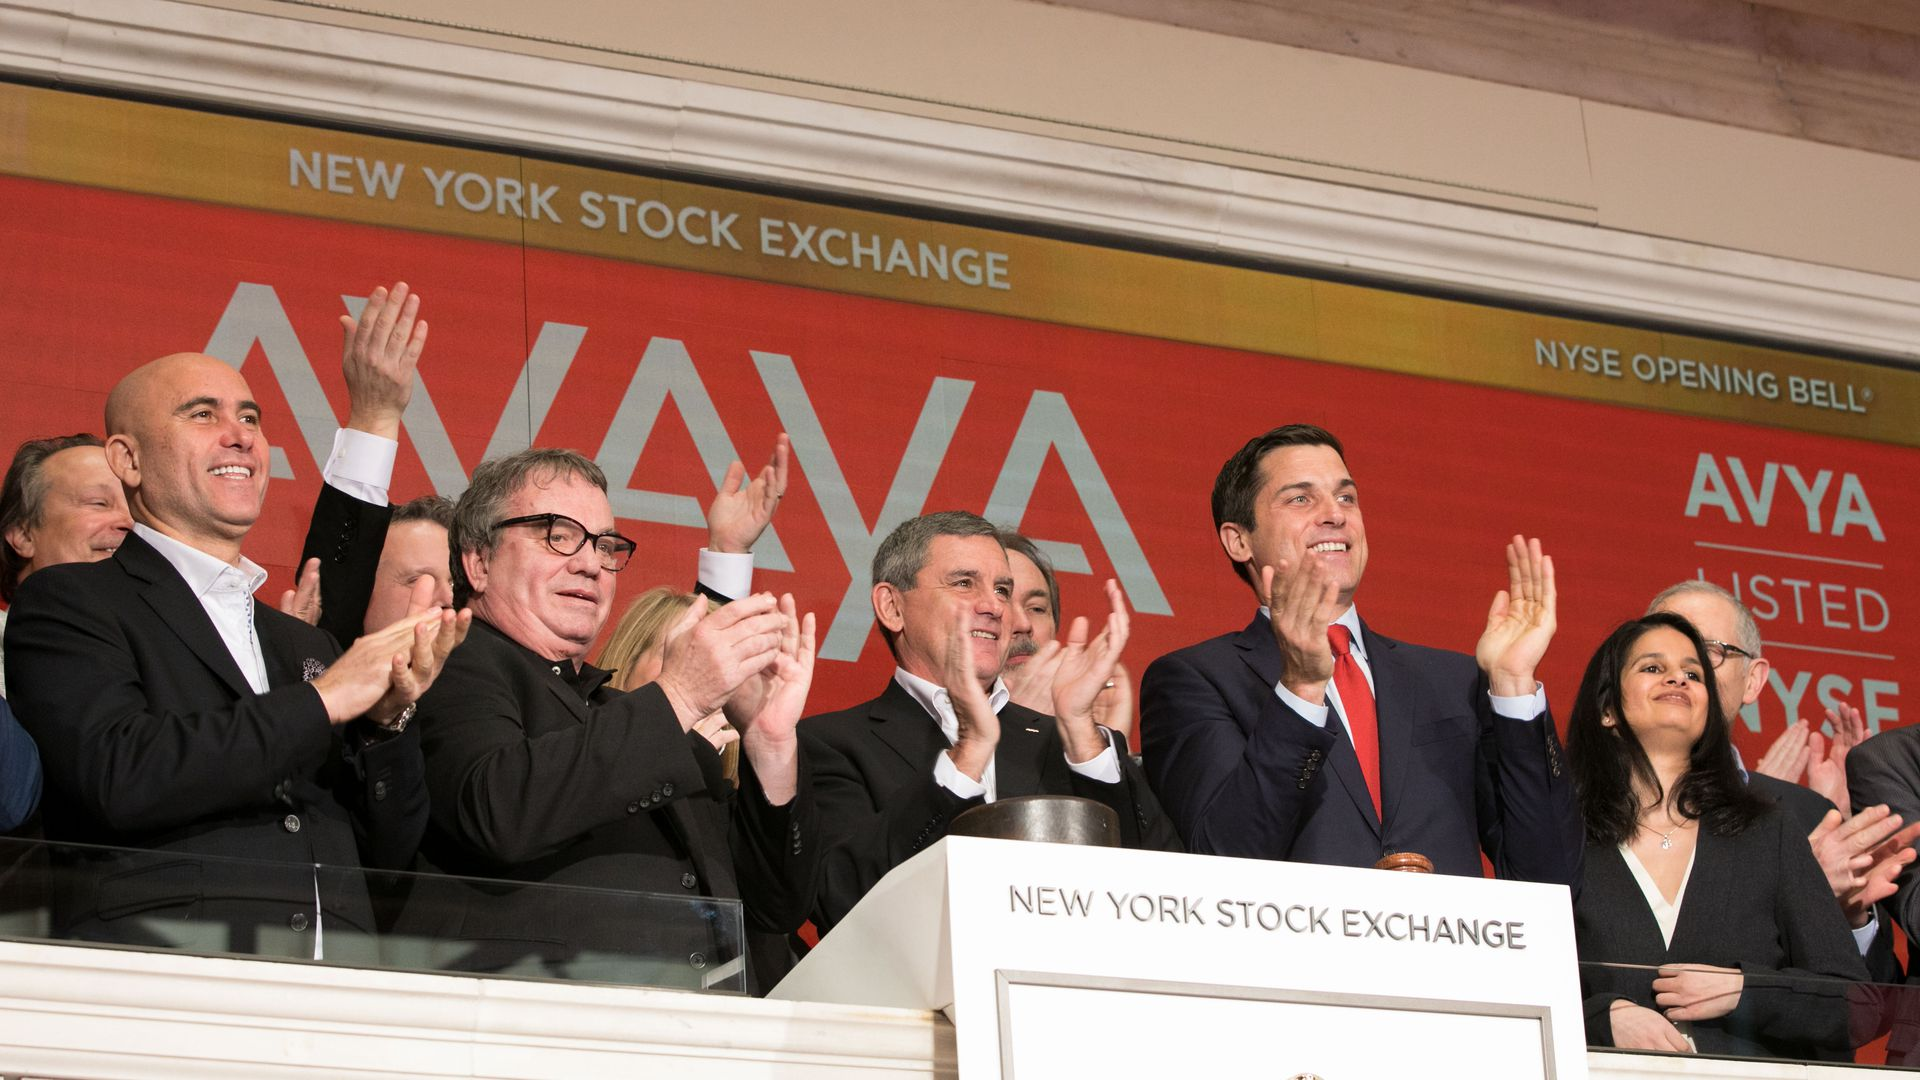 Avaya at the NYSE opening bell ceremony